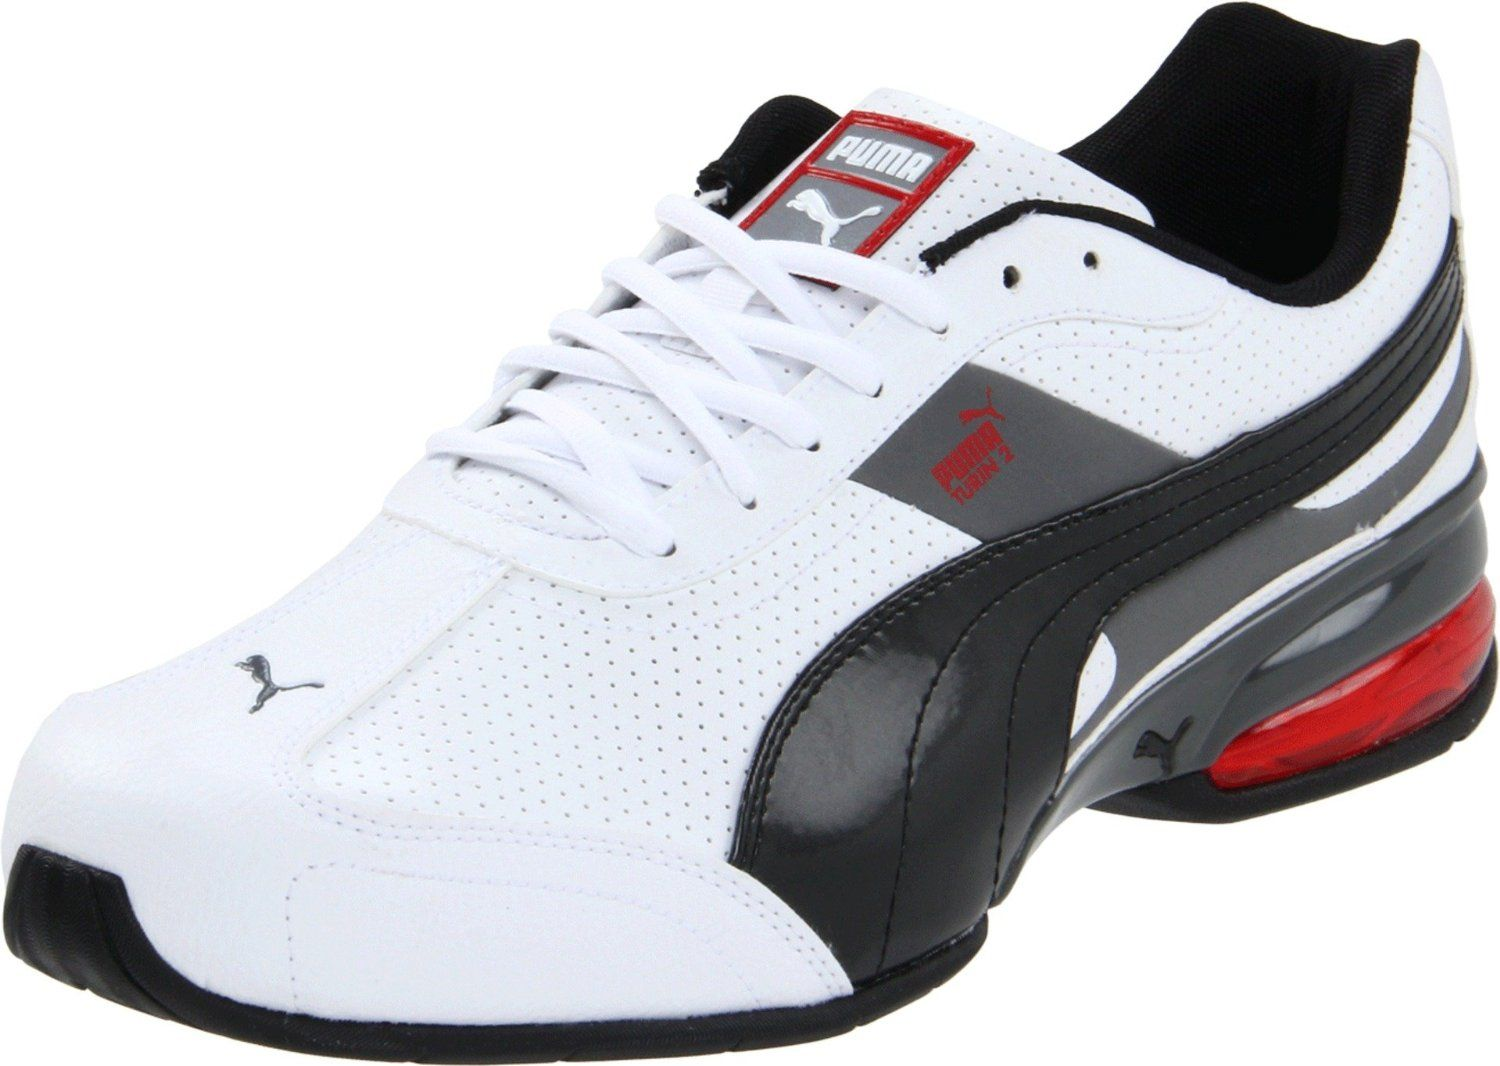 #Everdealz #coupons #puma #shoes #sports Get 40% #off on